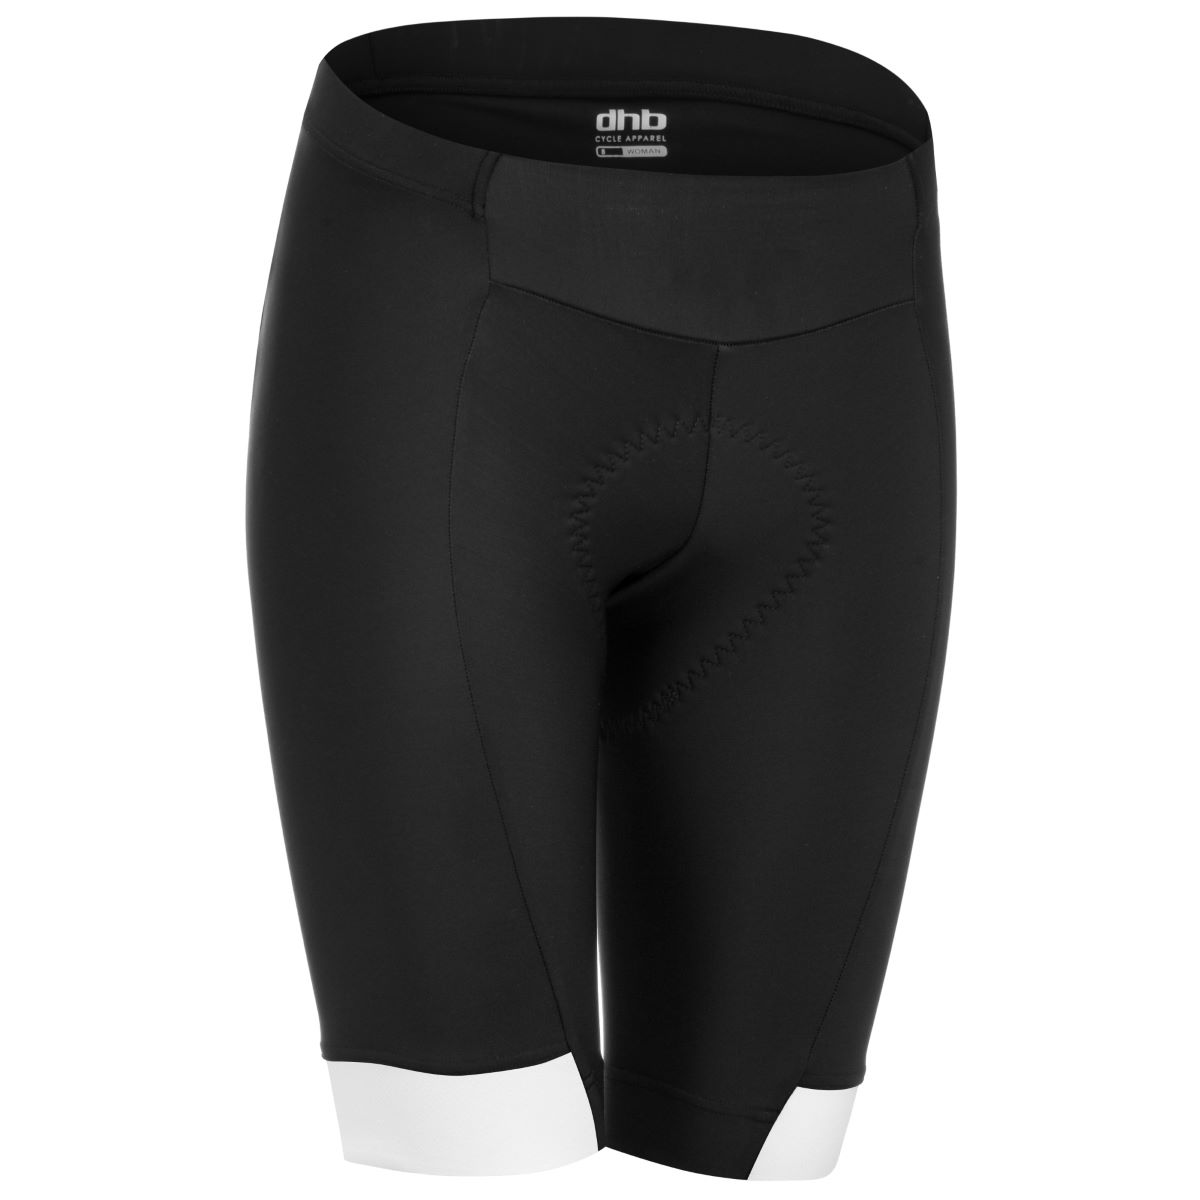 dhb Aeron Women's Shorts - UK 8 Black/White | Waist Shorts